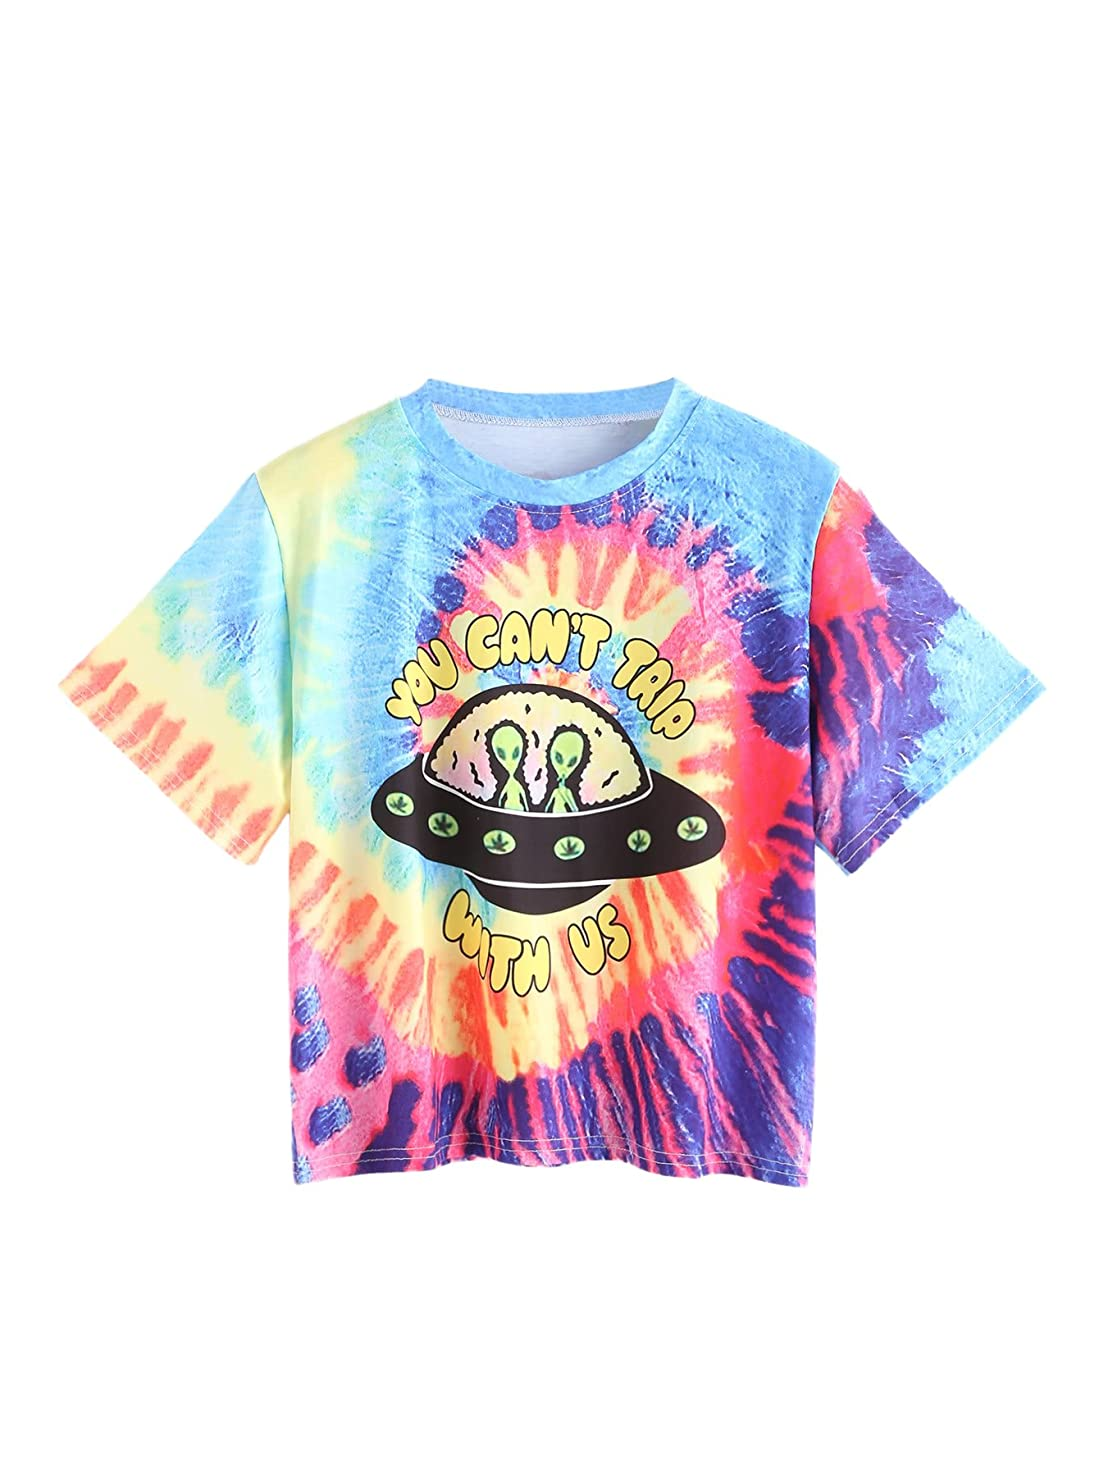 Romwe Women's Colorful Tie Dye Ombre Round Neck Tee Shirt Top